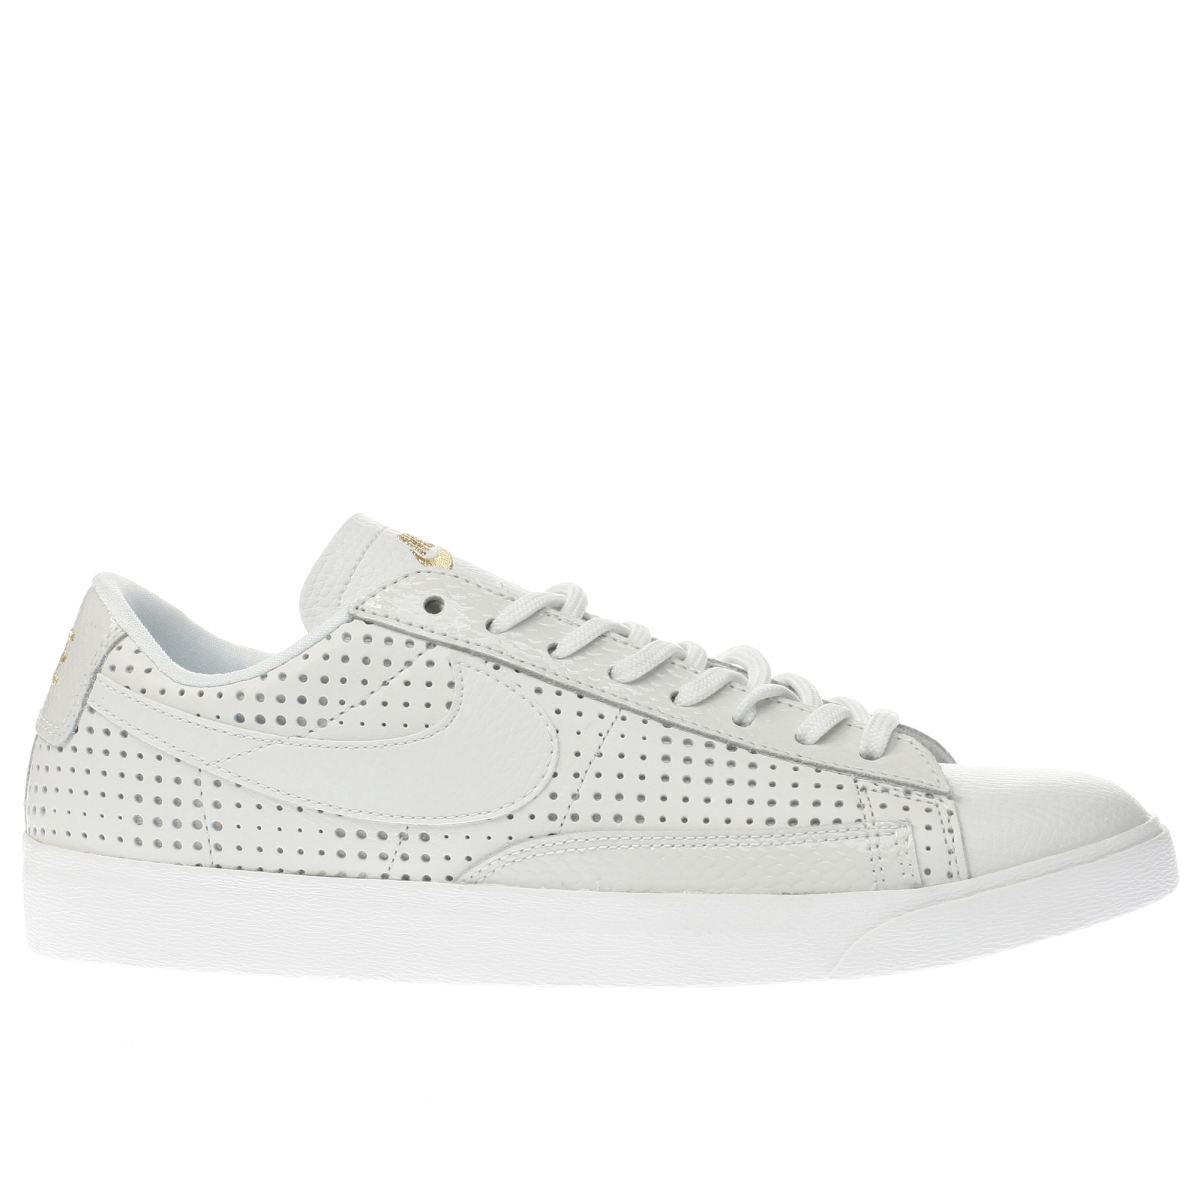 nike white & gold beautiful x blazer low trainers